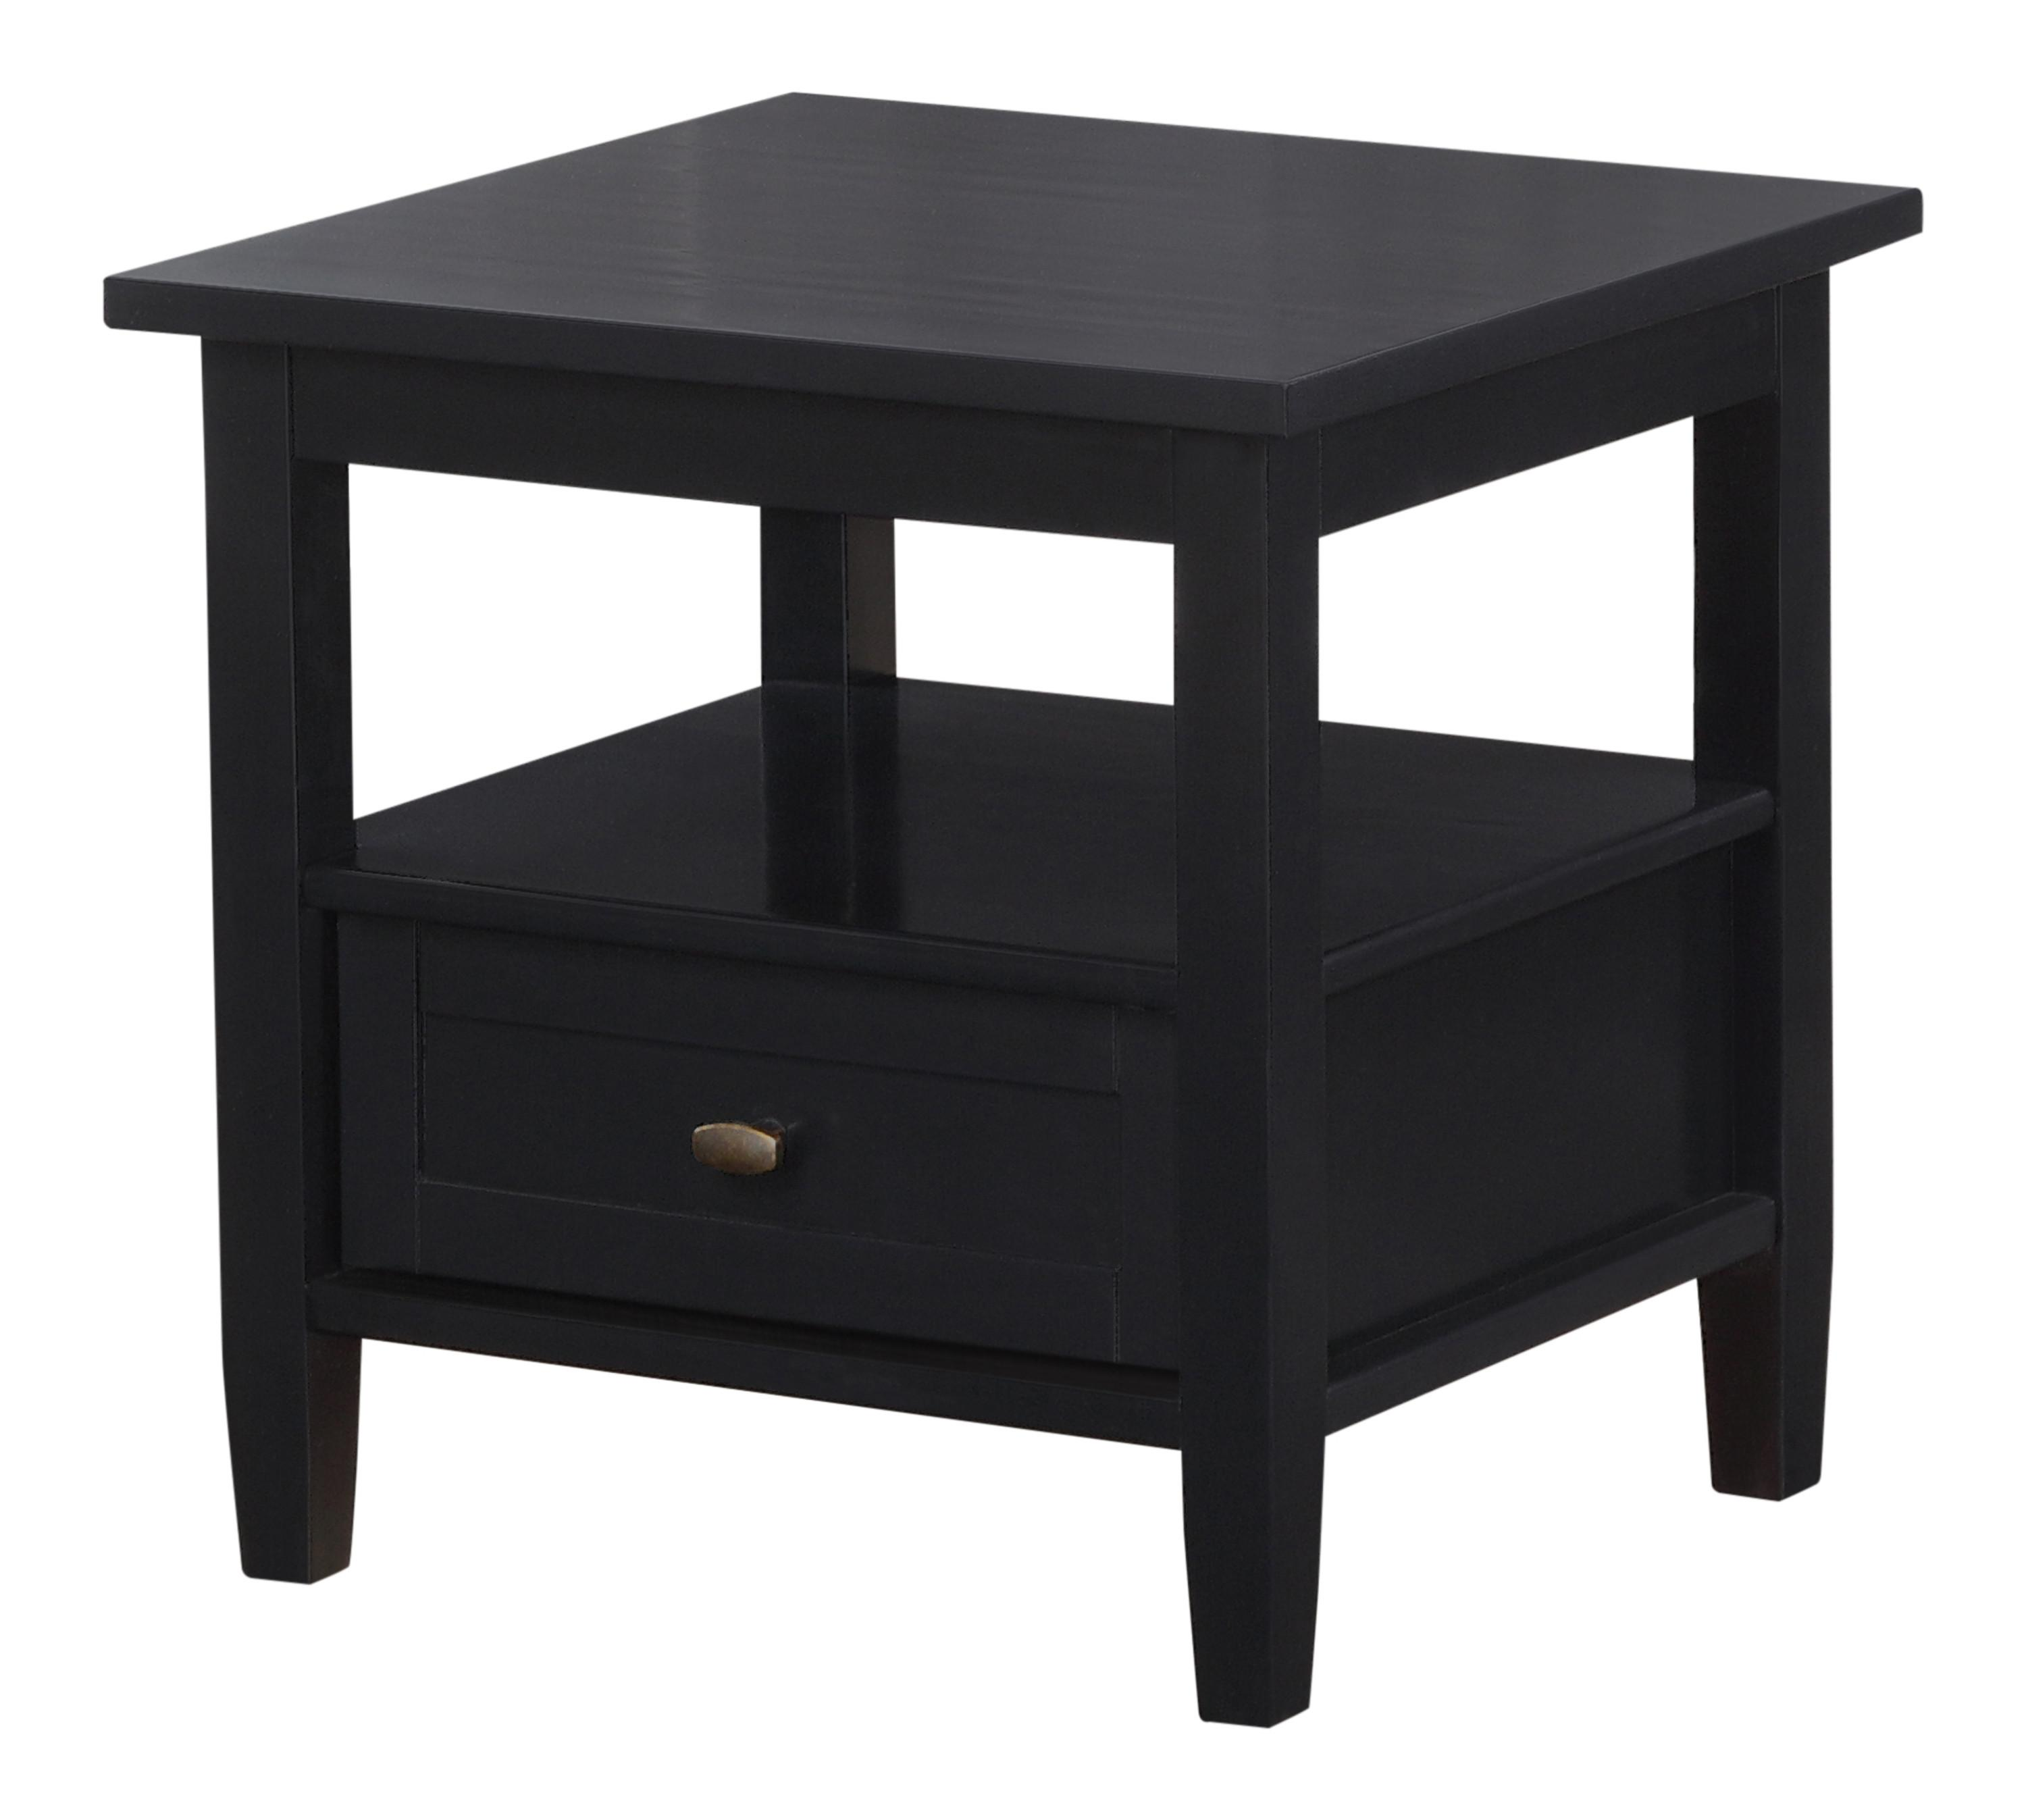 Kitchen Side Table: Amazon.com: Simpli Home Warm Shaker End Table, Black